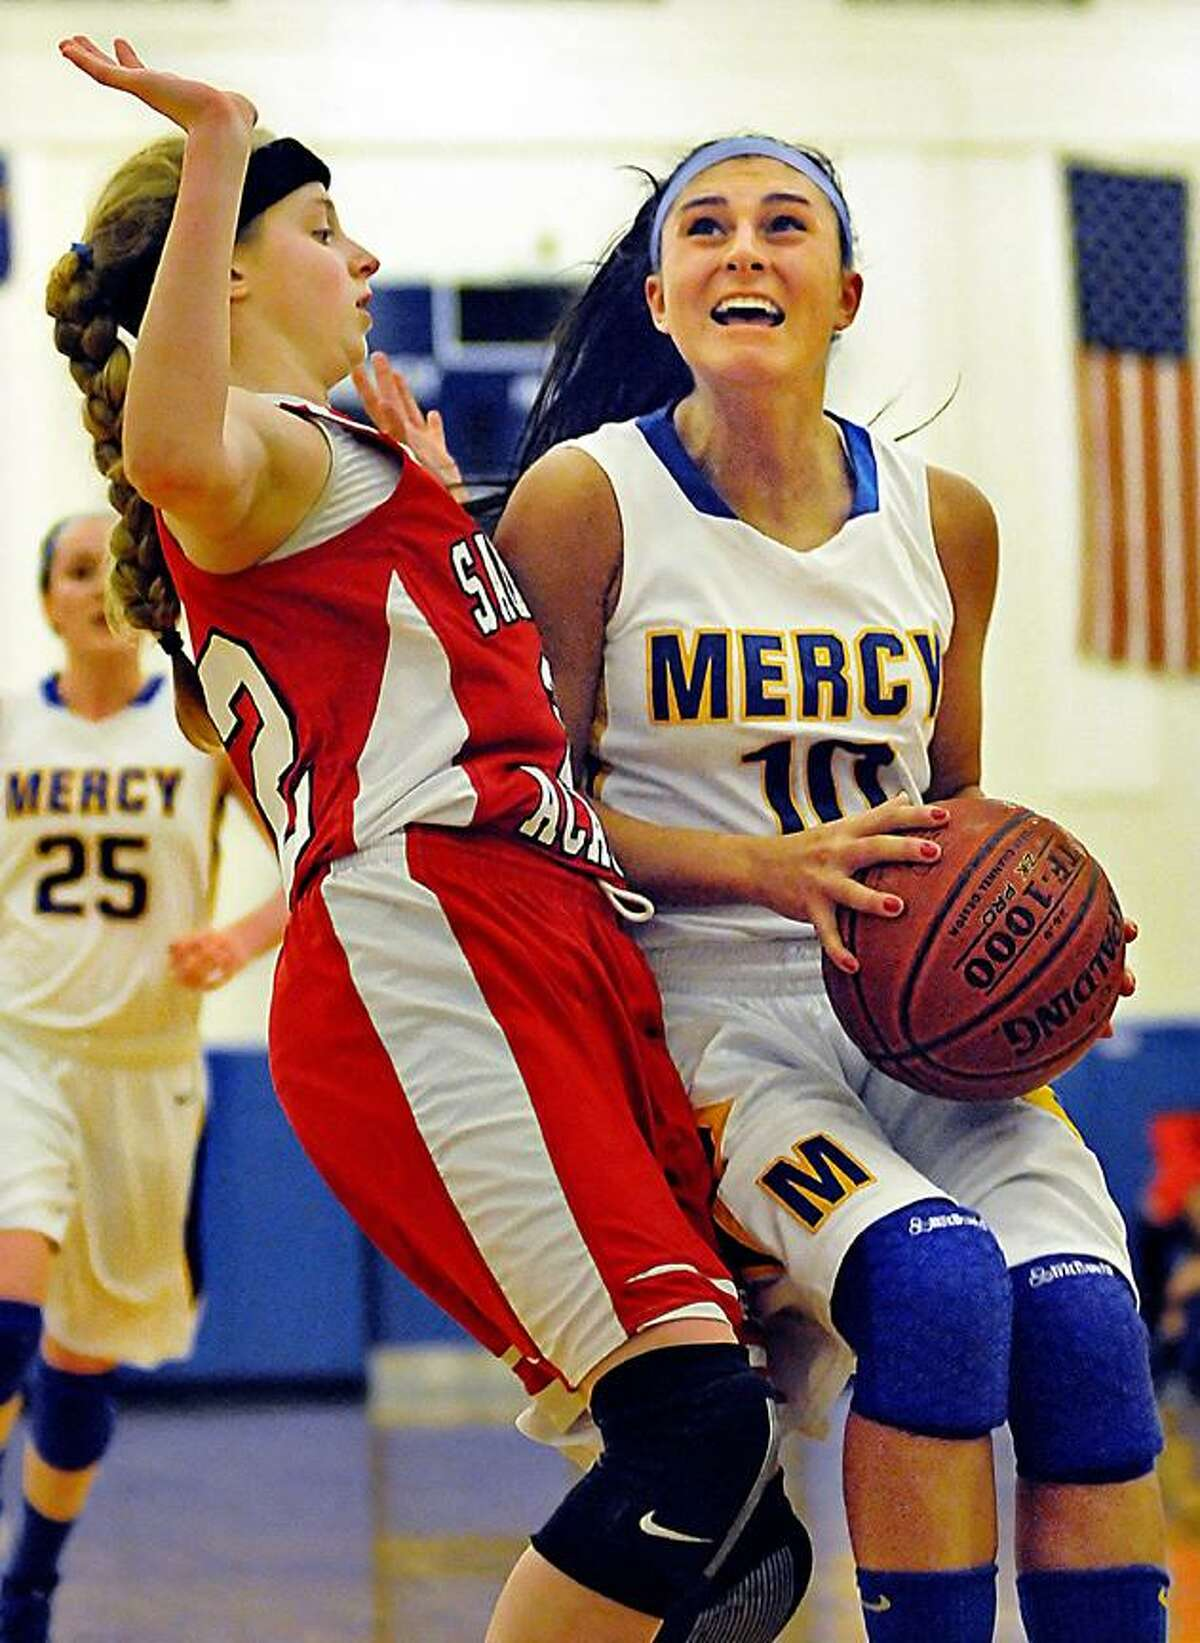 Catherine Avalone/The Middletown Press Mercy senior guard Jordyn Nappi hits the paint hard as Sacred Heart freshman Kaleigh Putnam defends Friday night during the CIAC Class LL Second Round State Tournament. The Mercy Tigers defeated the Sacred Heart Pacers 54-26.